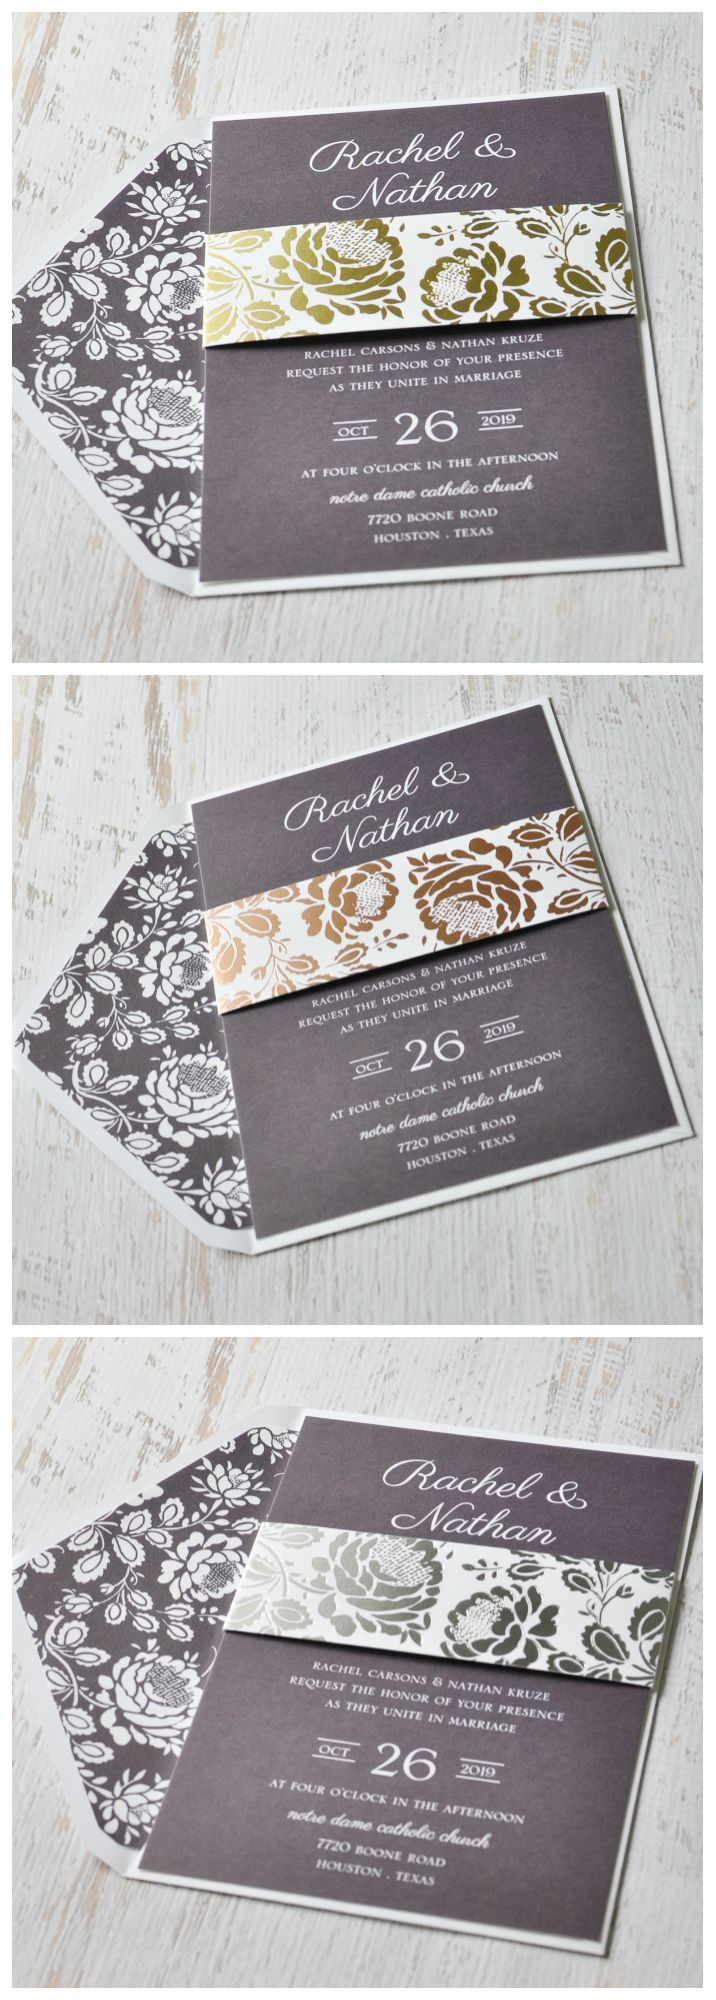 real simple unique wedding invitations%0A A touch of shine and a lot of style will captivate your wedding guests  This